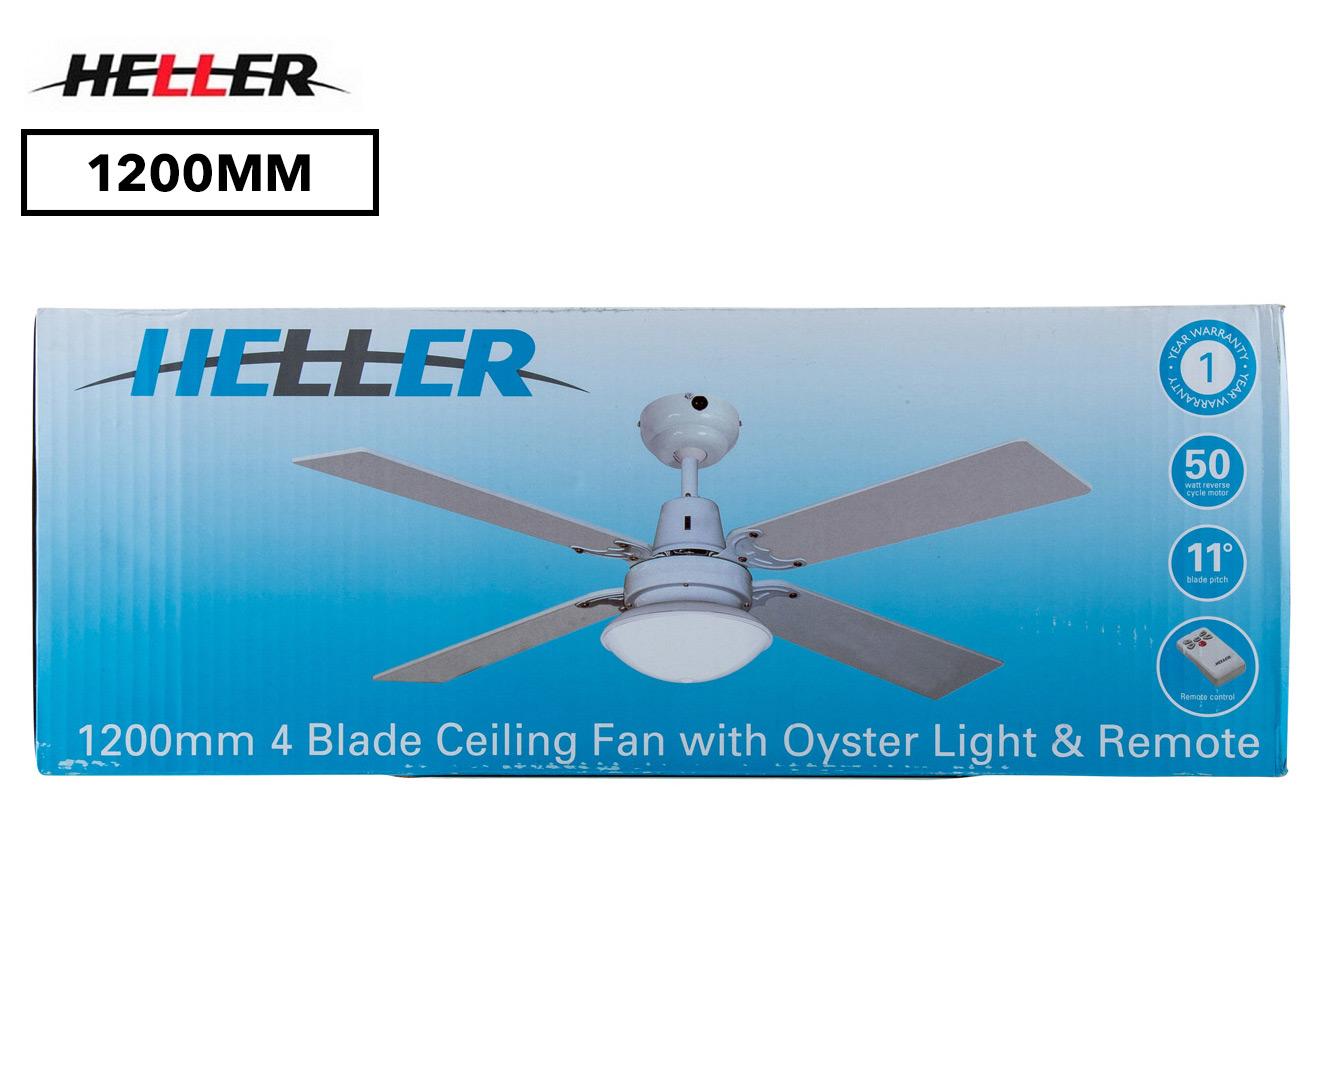 Heller Sienna 1200mm Reversible 4 Blade Ceiling Fan